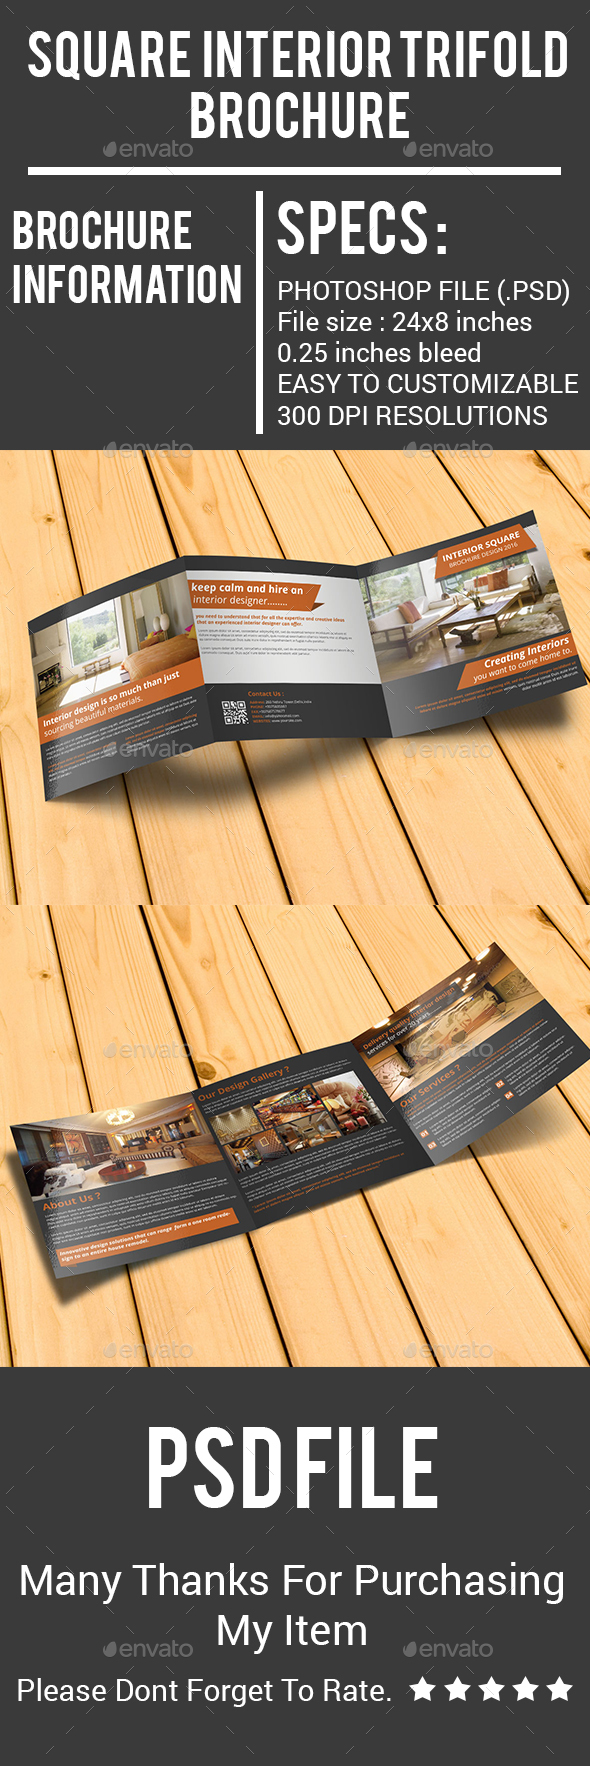 Square Interior Trifold Brochure - Corporate Brochures